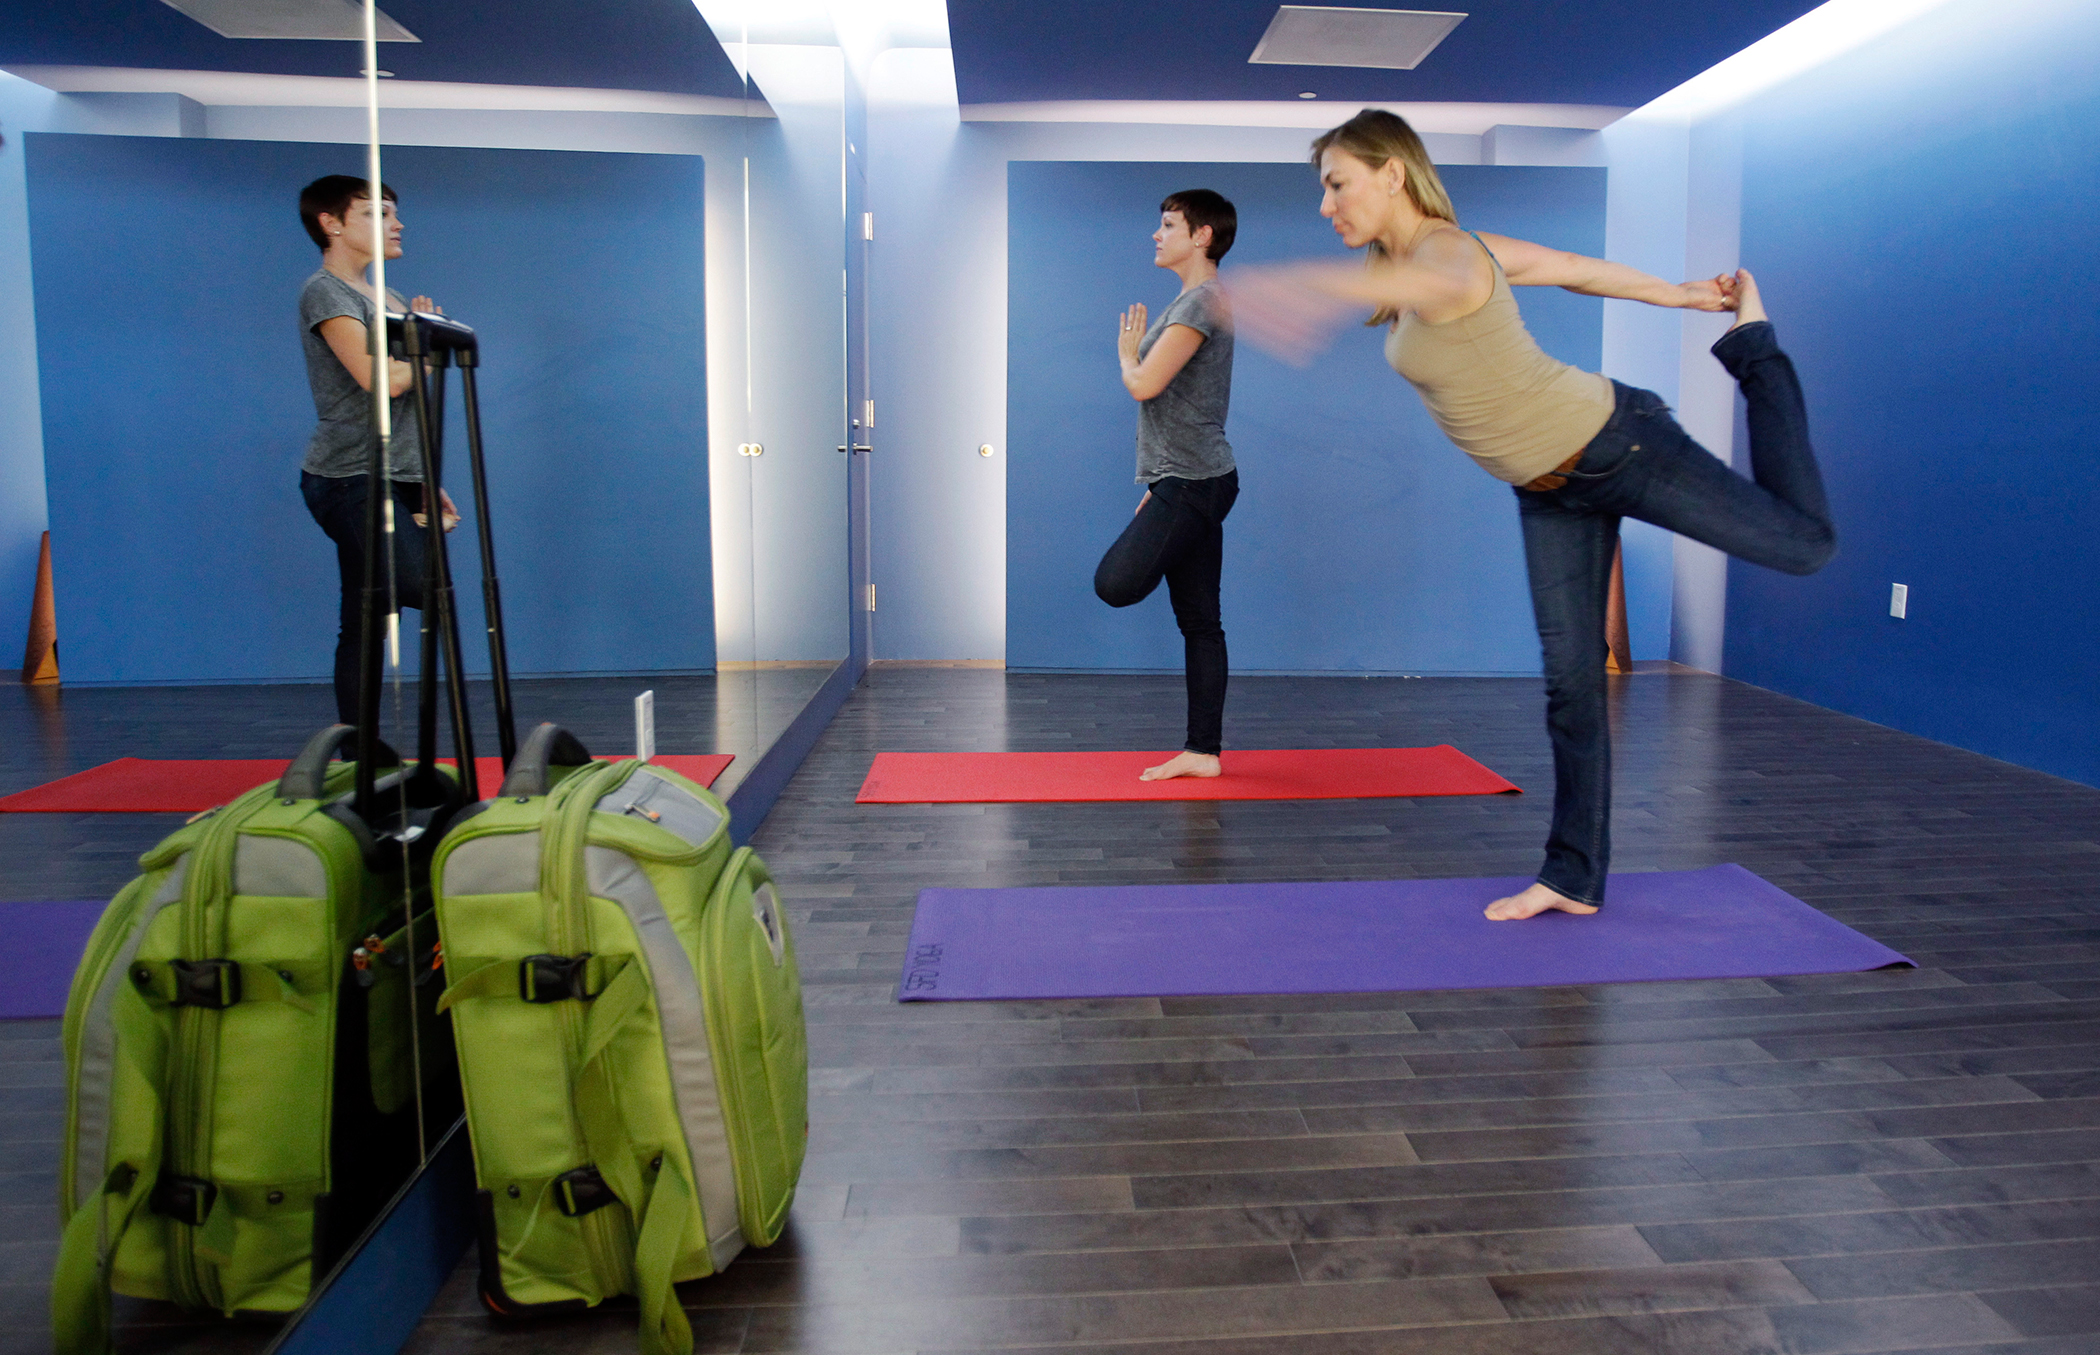 In this Friday, Jan. 27, 2012 photo, travelers Maria Poole, right, and Lindsey Shepard, practice yoga at San Francisco International Airport's new Yoga Room, in San Francisco. The quiet, dimly lit studio officially opened last week in a former storage room just past the security checkpoint at SFO's Terminal 2. Airport officials believe the 150-square-foot room with mirrored walls is the world's first airport yoga studio, said spokesman Mike McCarron.